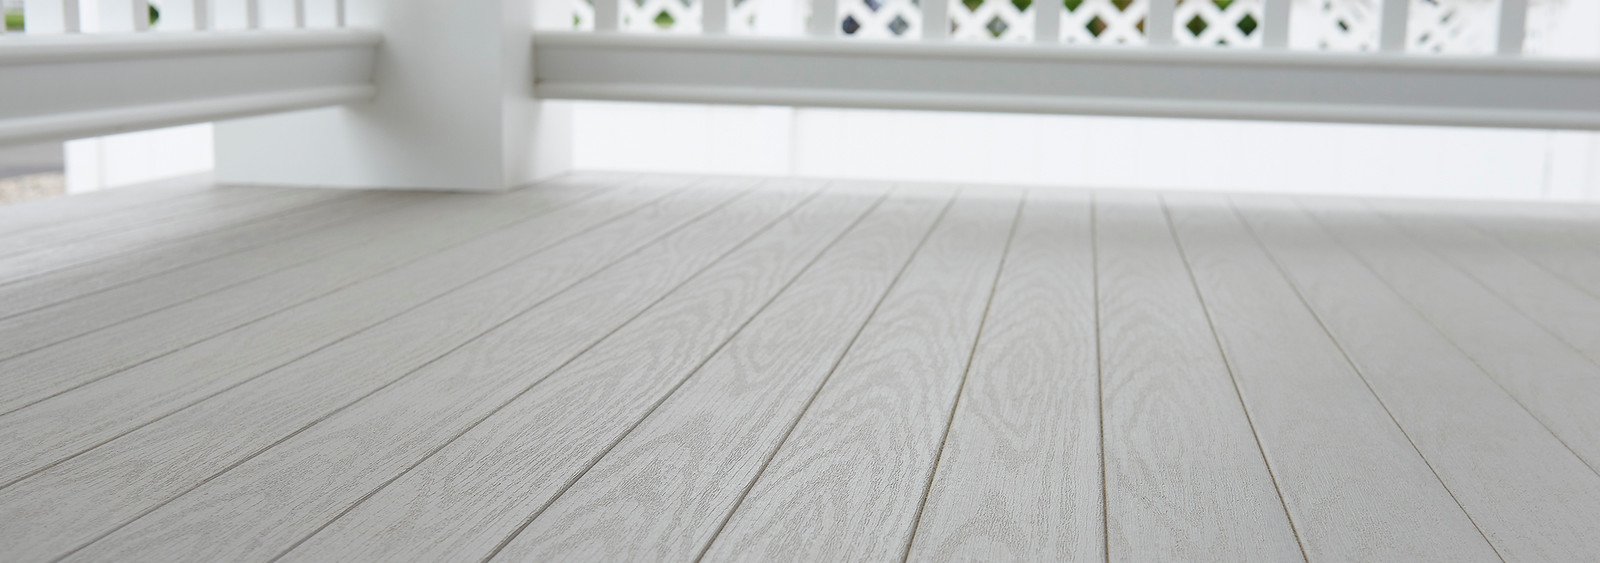 Serenity Porch Flooring In Harbor Grey